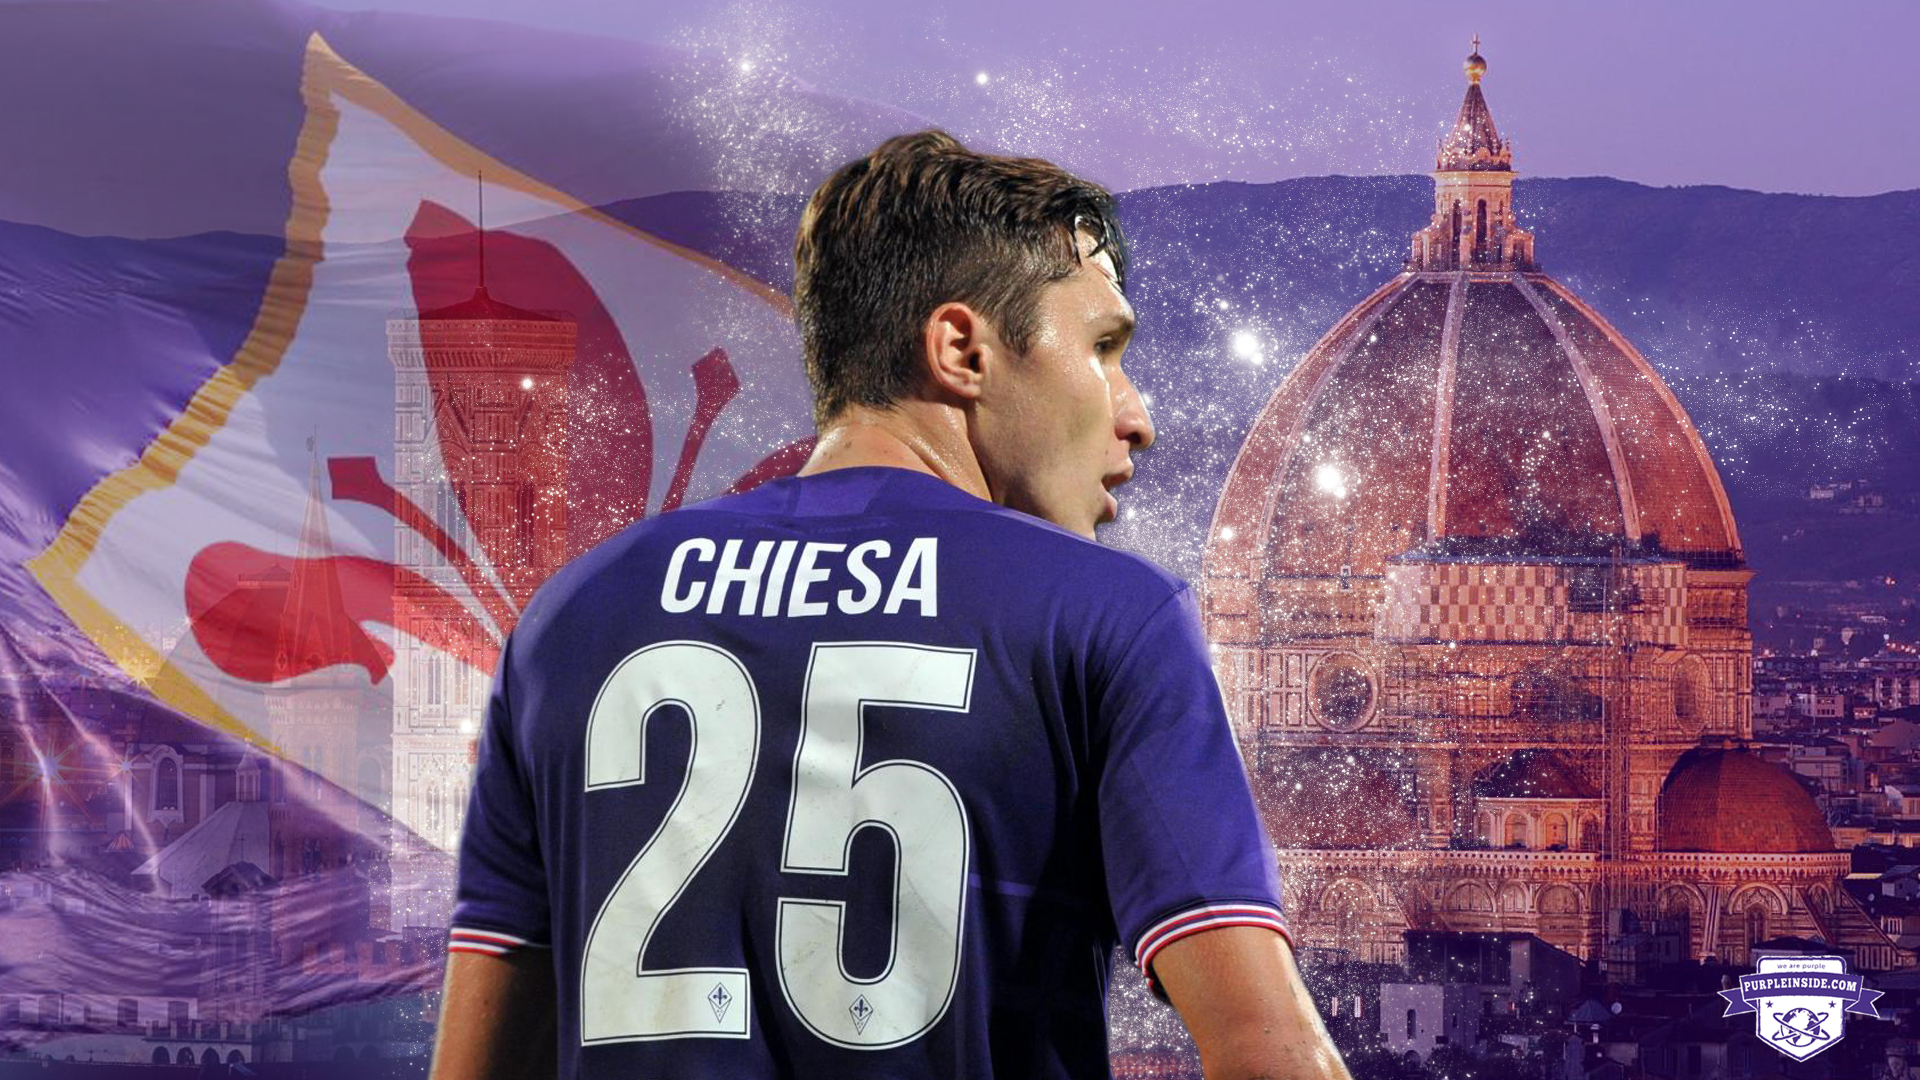 A.C.F. Fiorentina - Wallpaper - Welcome to Purple Inside! The ...